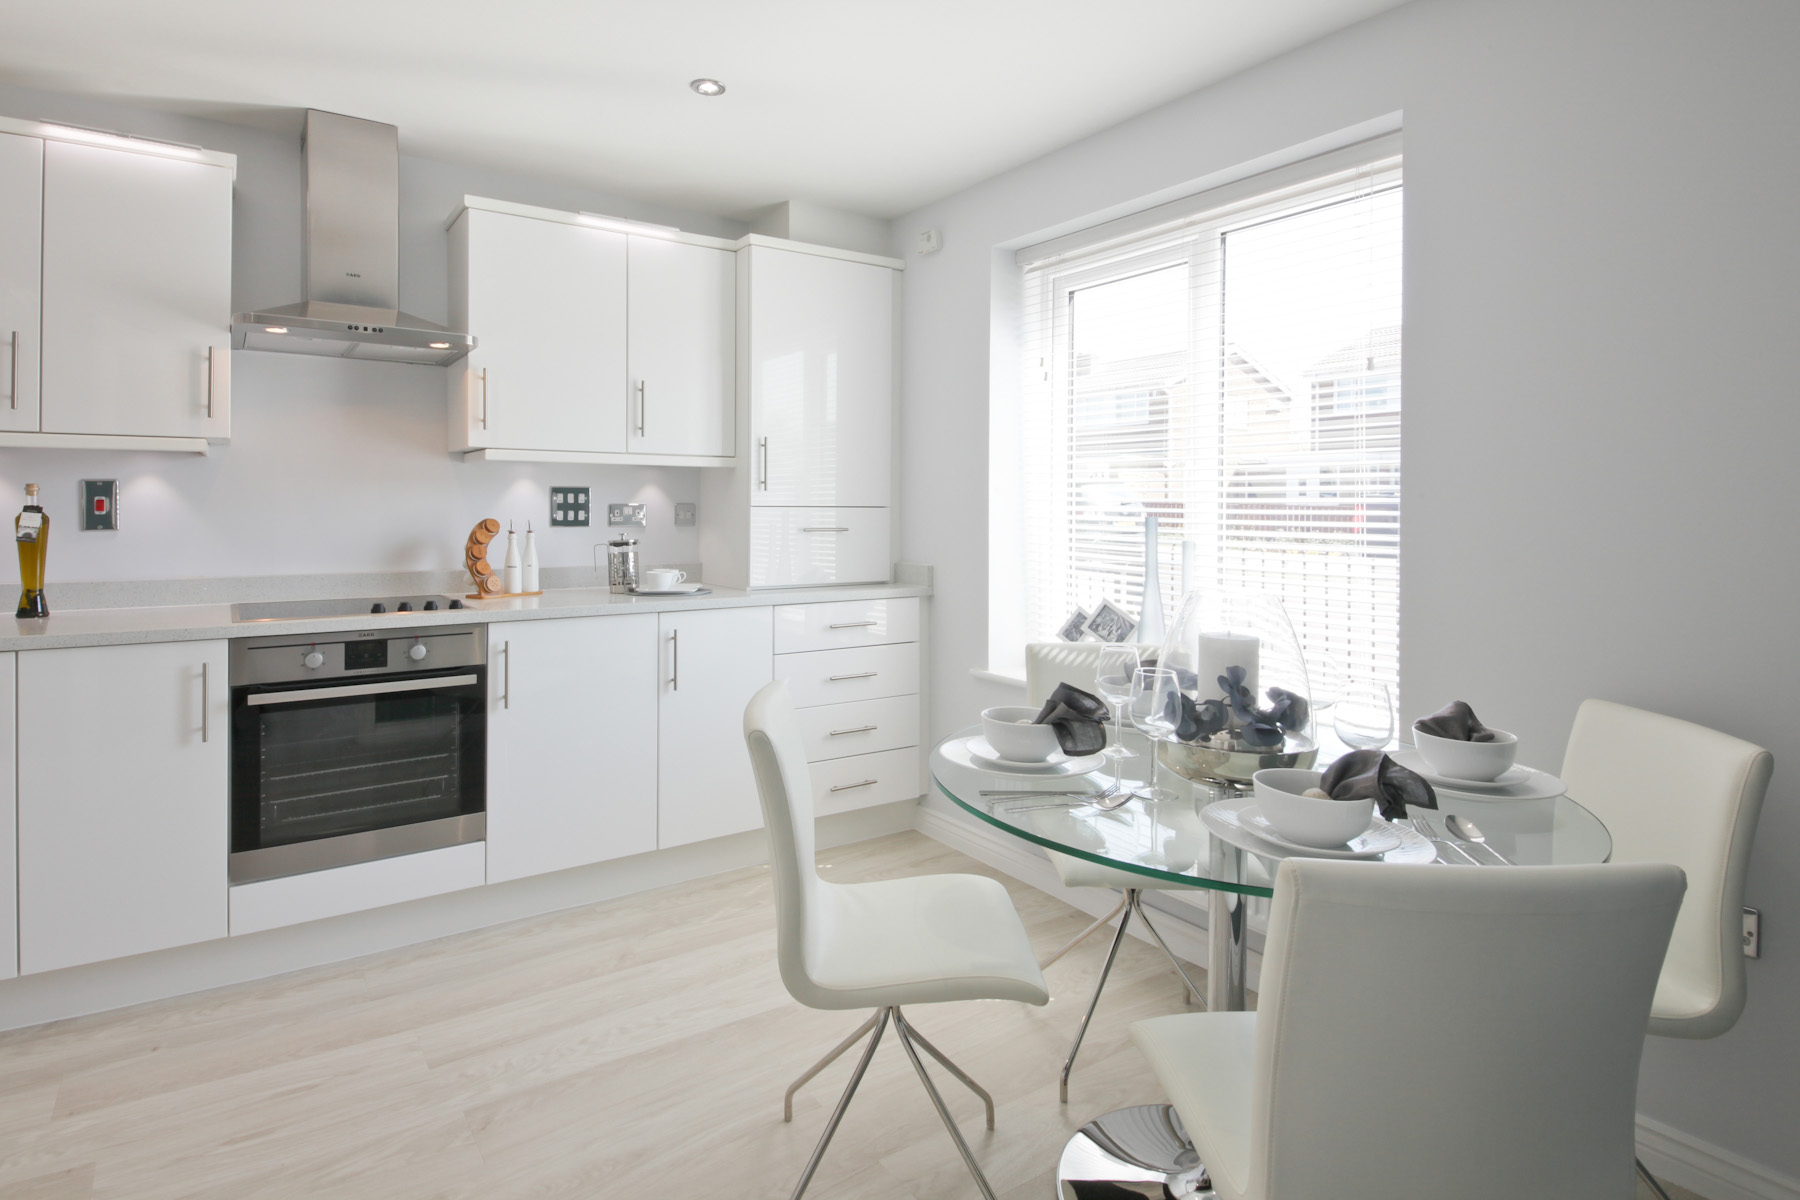 north-east-cragside-mews-pa41-kempsford-5-kitchen